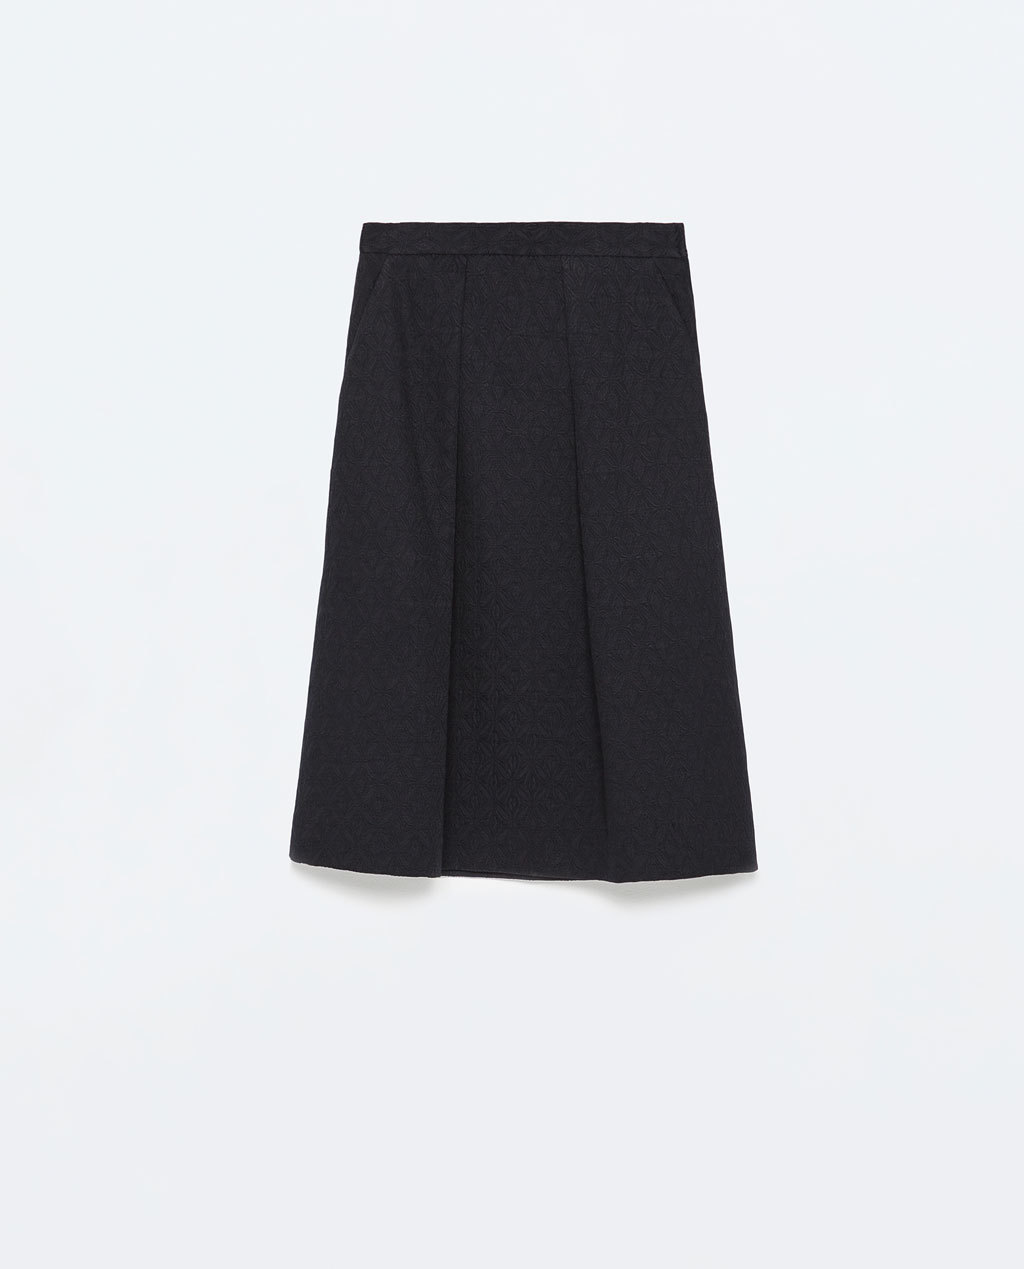 Box Pleats Jacquard Midi Skirt - pattern: plain; style: full/prom skirt; fit: loose/voluminous; waist: high rise; predominant colour: navy; occasions: evening, work, creative work; length: on the knee; fibres: cotton - mix; hip detail: structured pleats at hip; waist detail: narrow waistband; pattern type: fabric; texture group: brocade/jacquard; season: s/s 2015